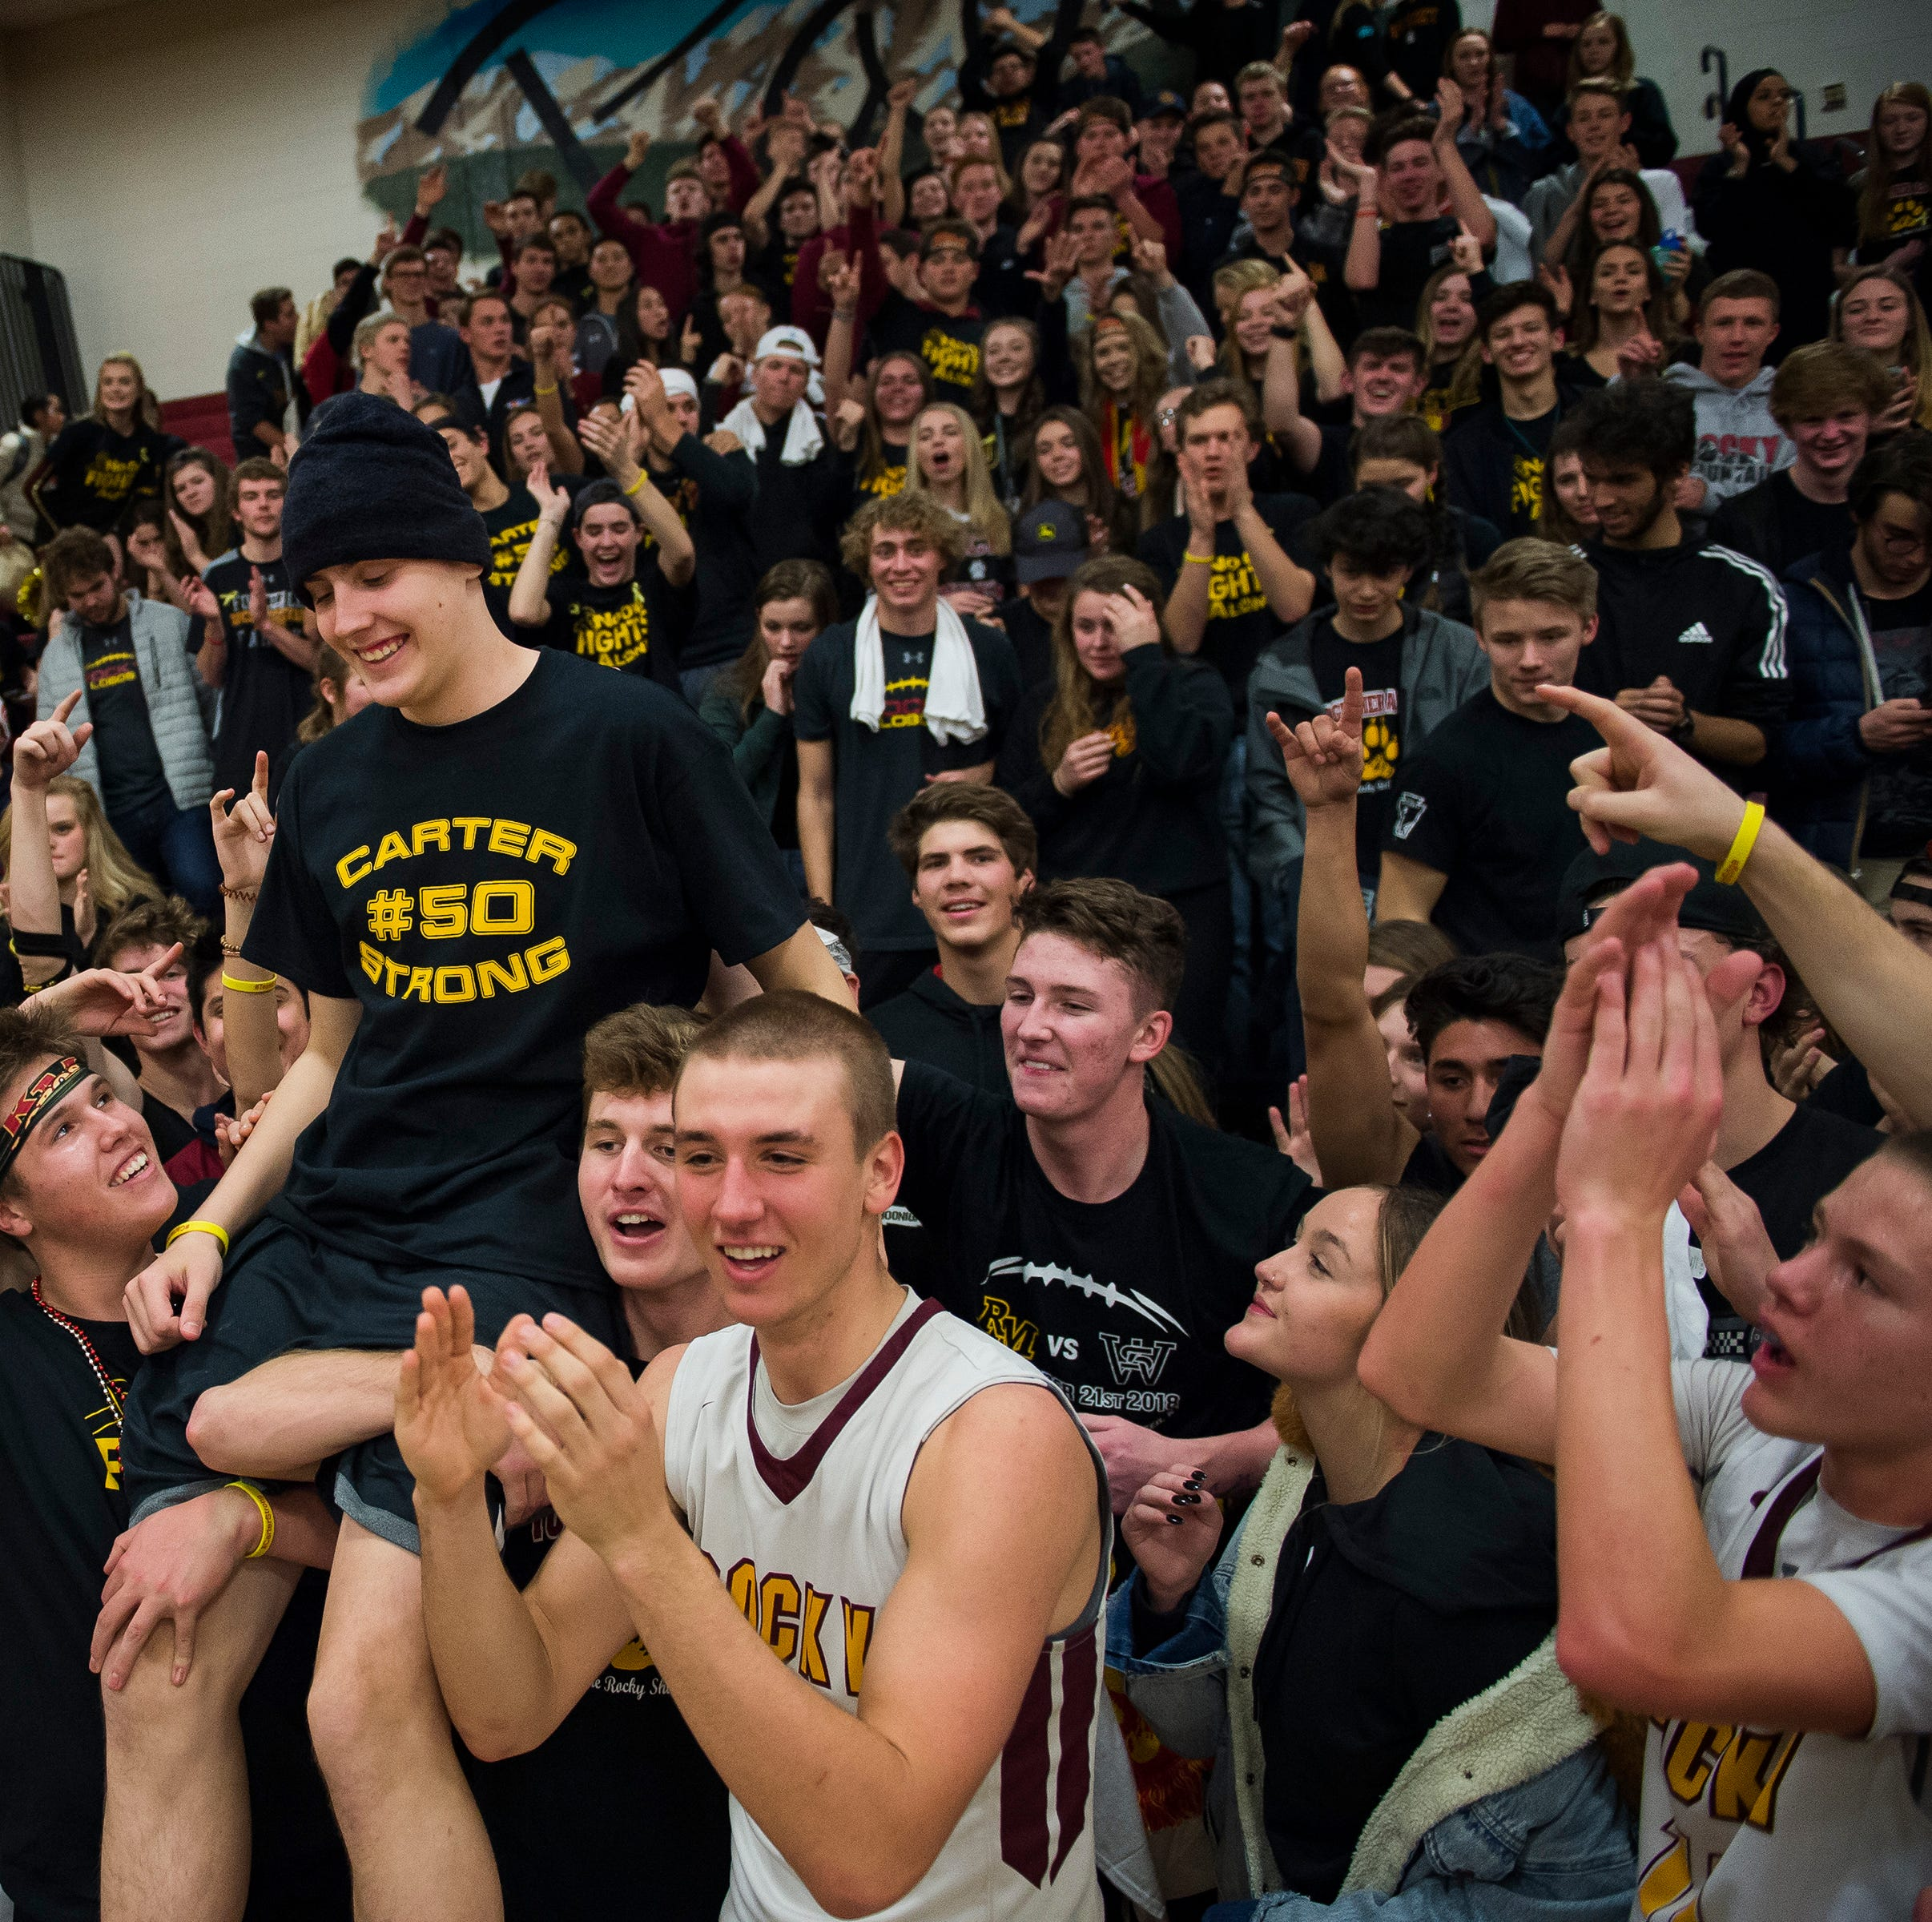 Community support overwhelms Rocky Mountain basketball player battling cancer